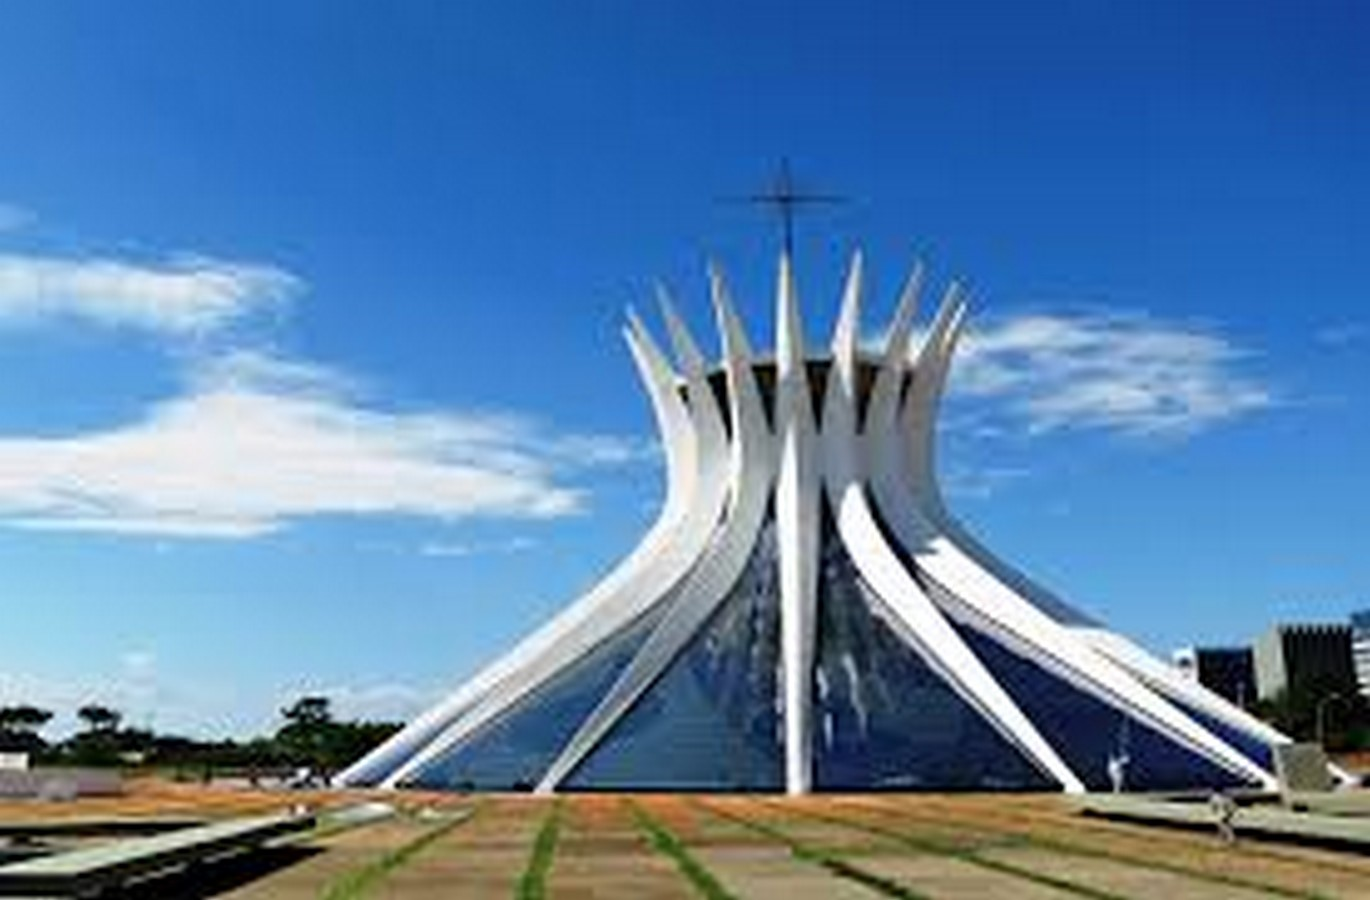 Cathedral of Brasília by Oscar Niemeyer-Hyperbolic structure built from Concrete - Sheet1